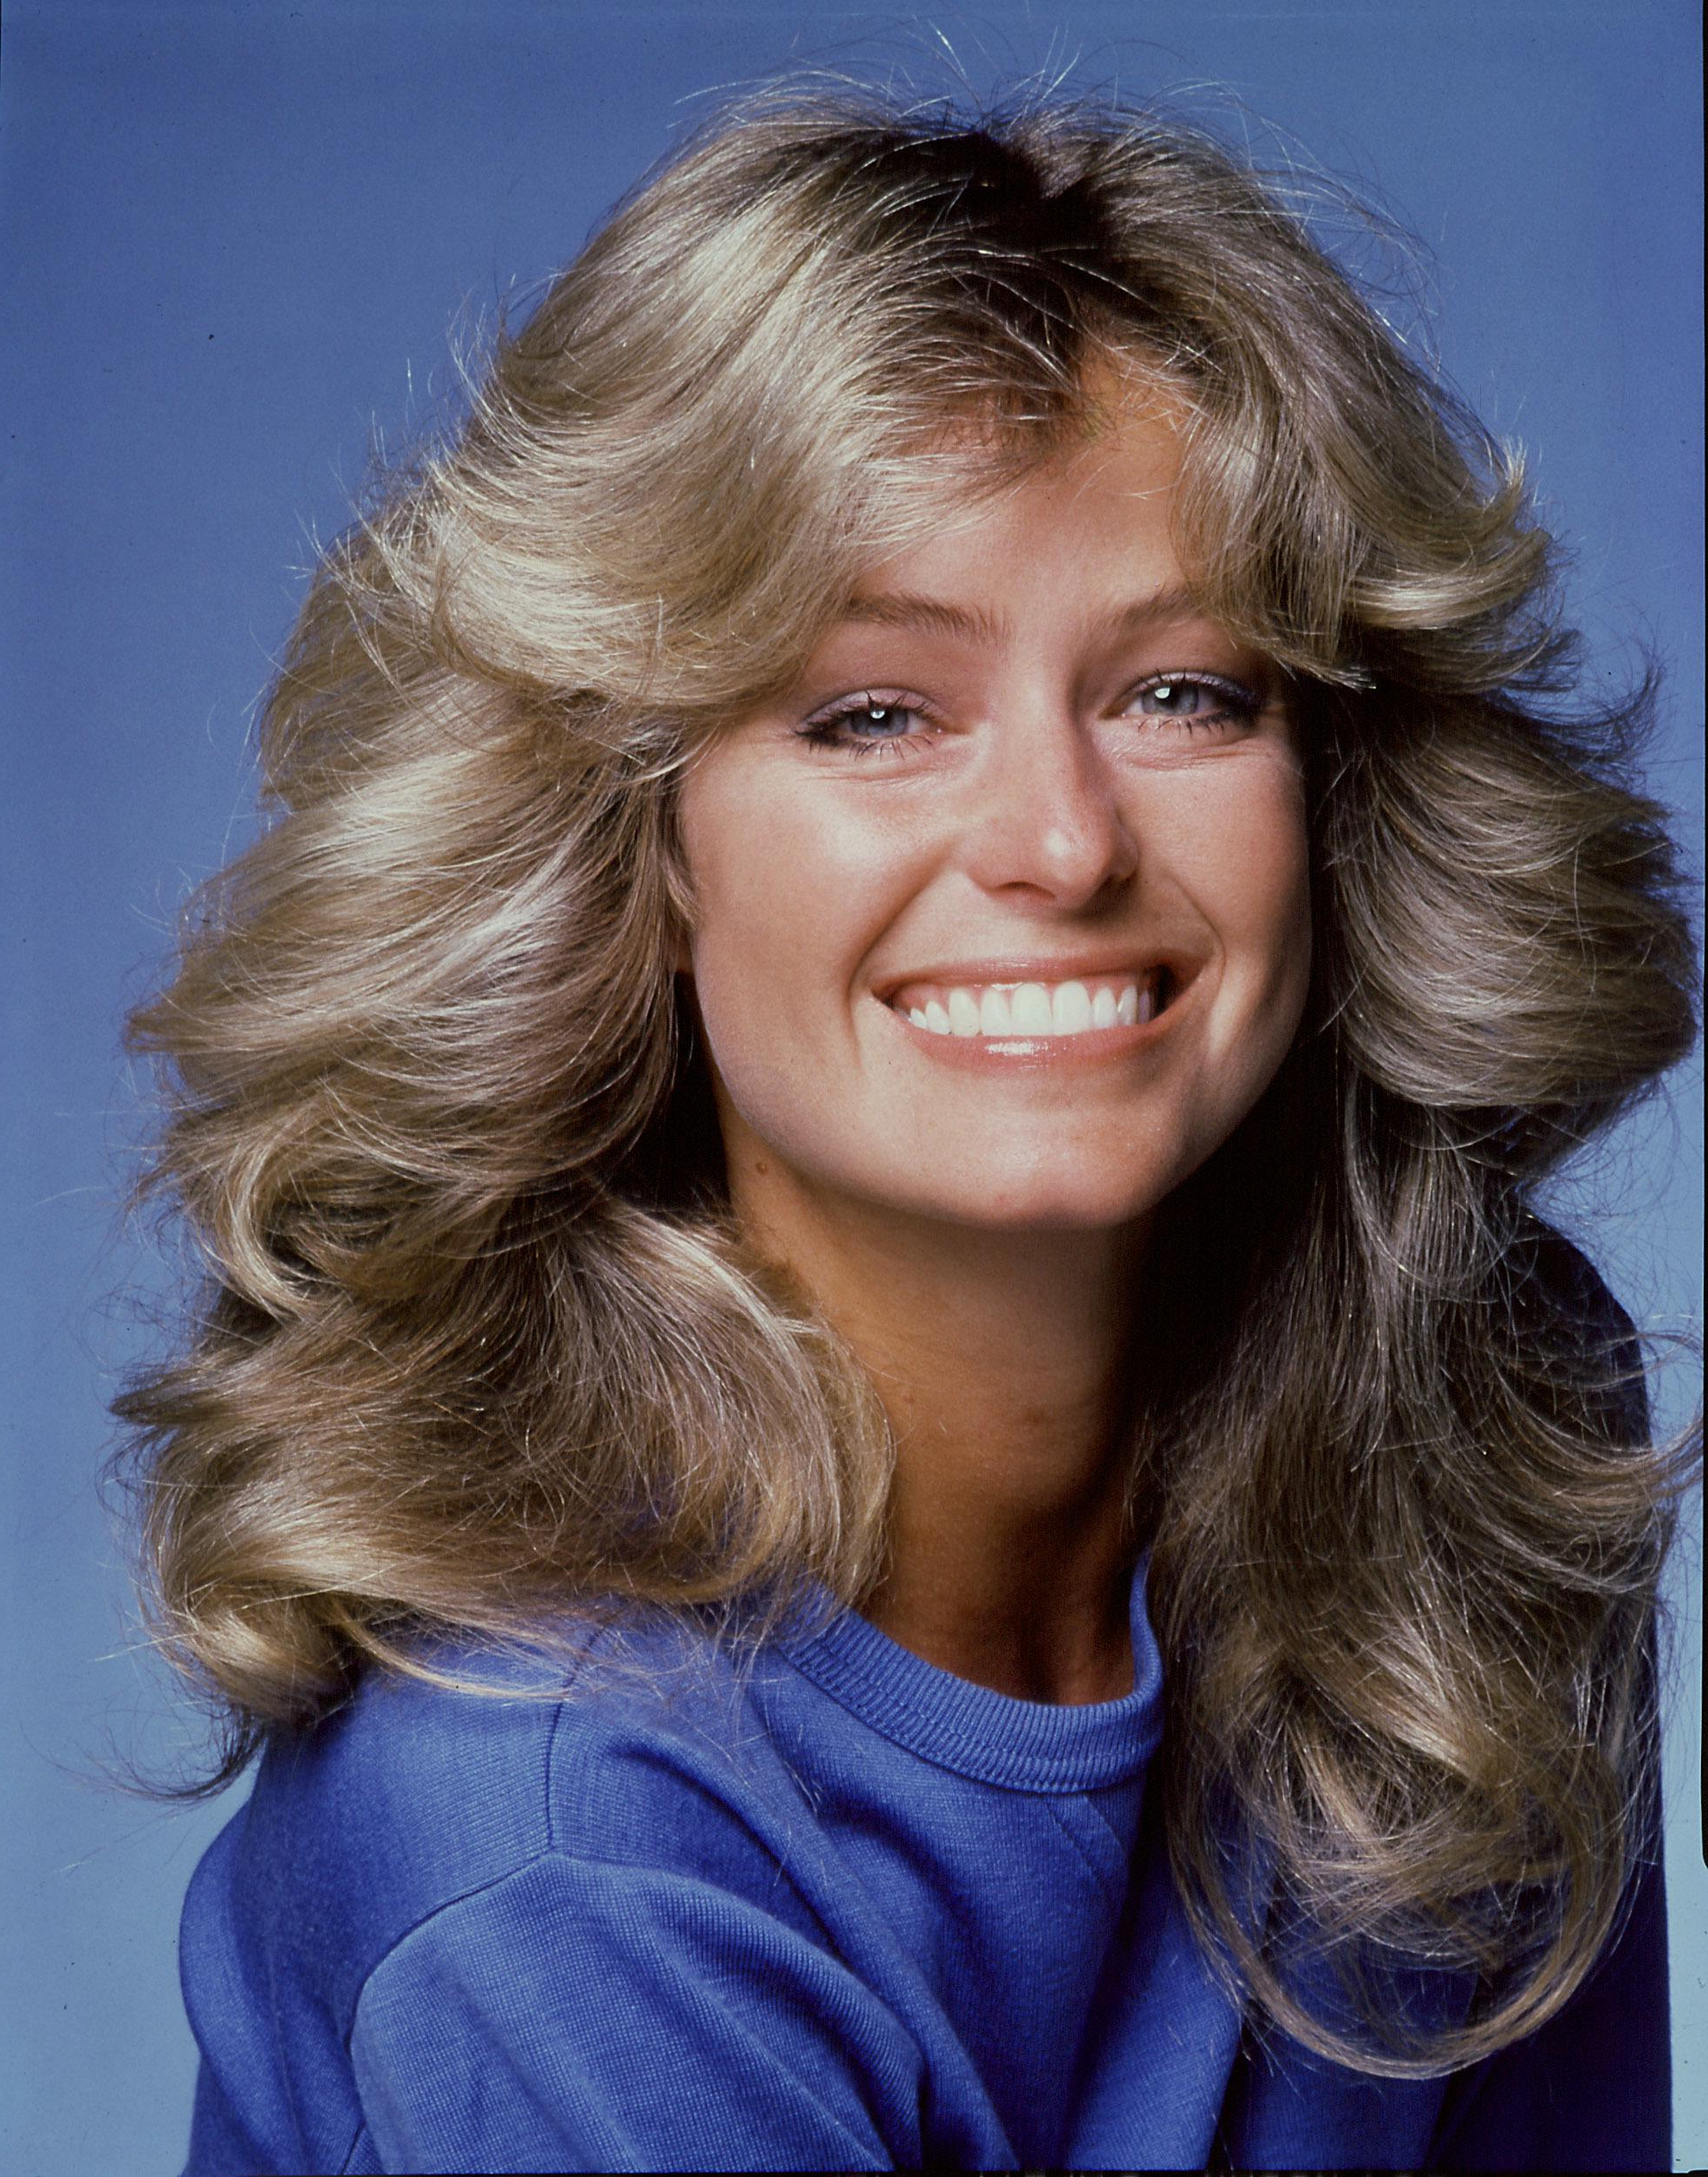 70s Hairstyles: 18 Iconic Hair Trends Making A Comeback With Regard To Trendy Long Feather Cut Bangs Hairstyles With Flipped Ends (View 17 of 20)